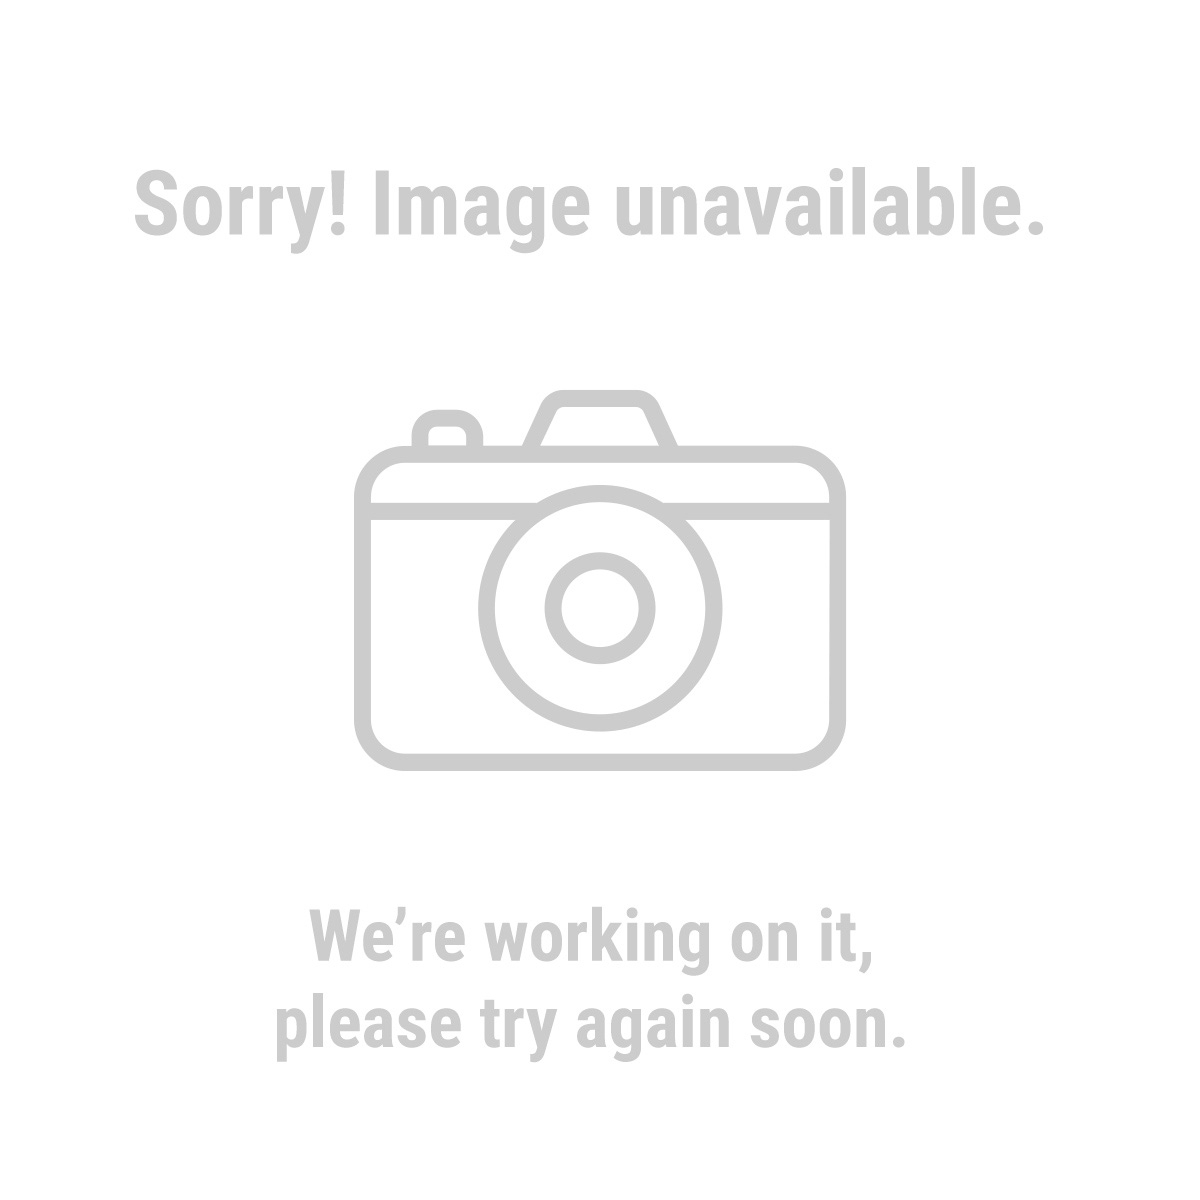 HFT 60727 10 ft. x 17 ft. Portable Garage